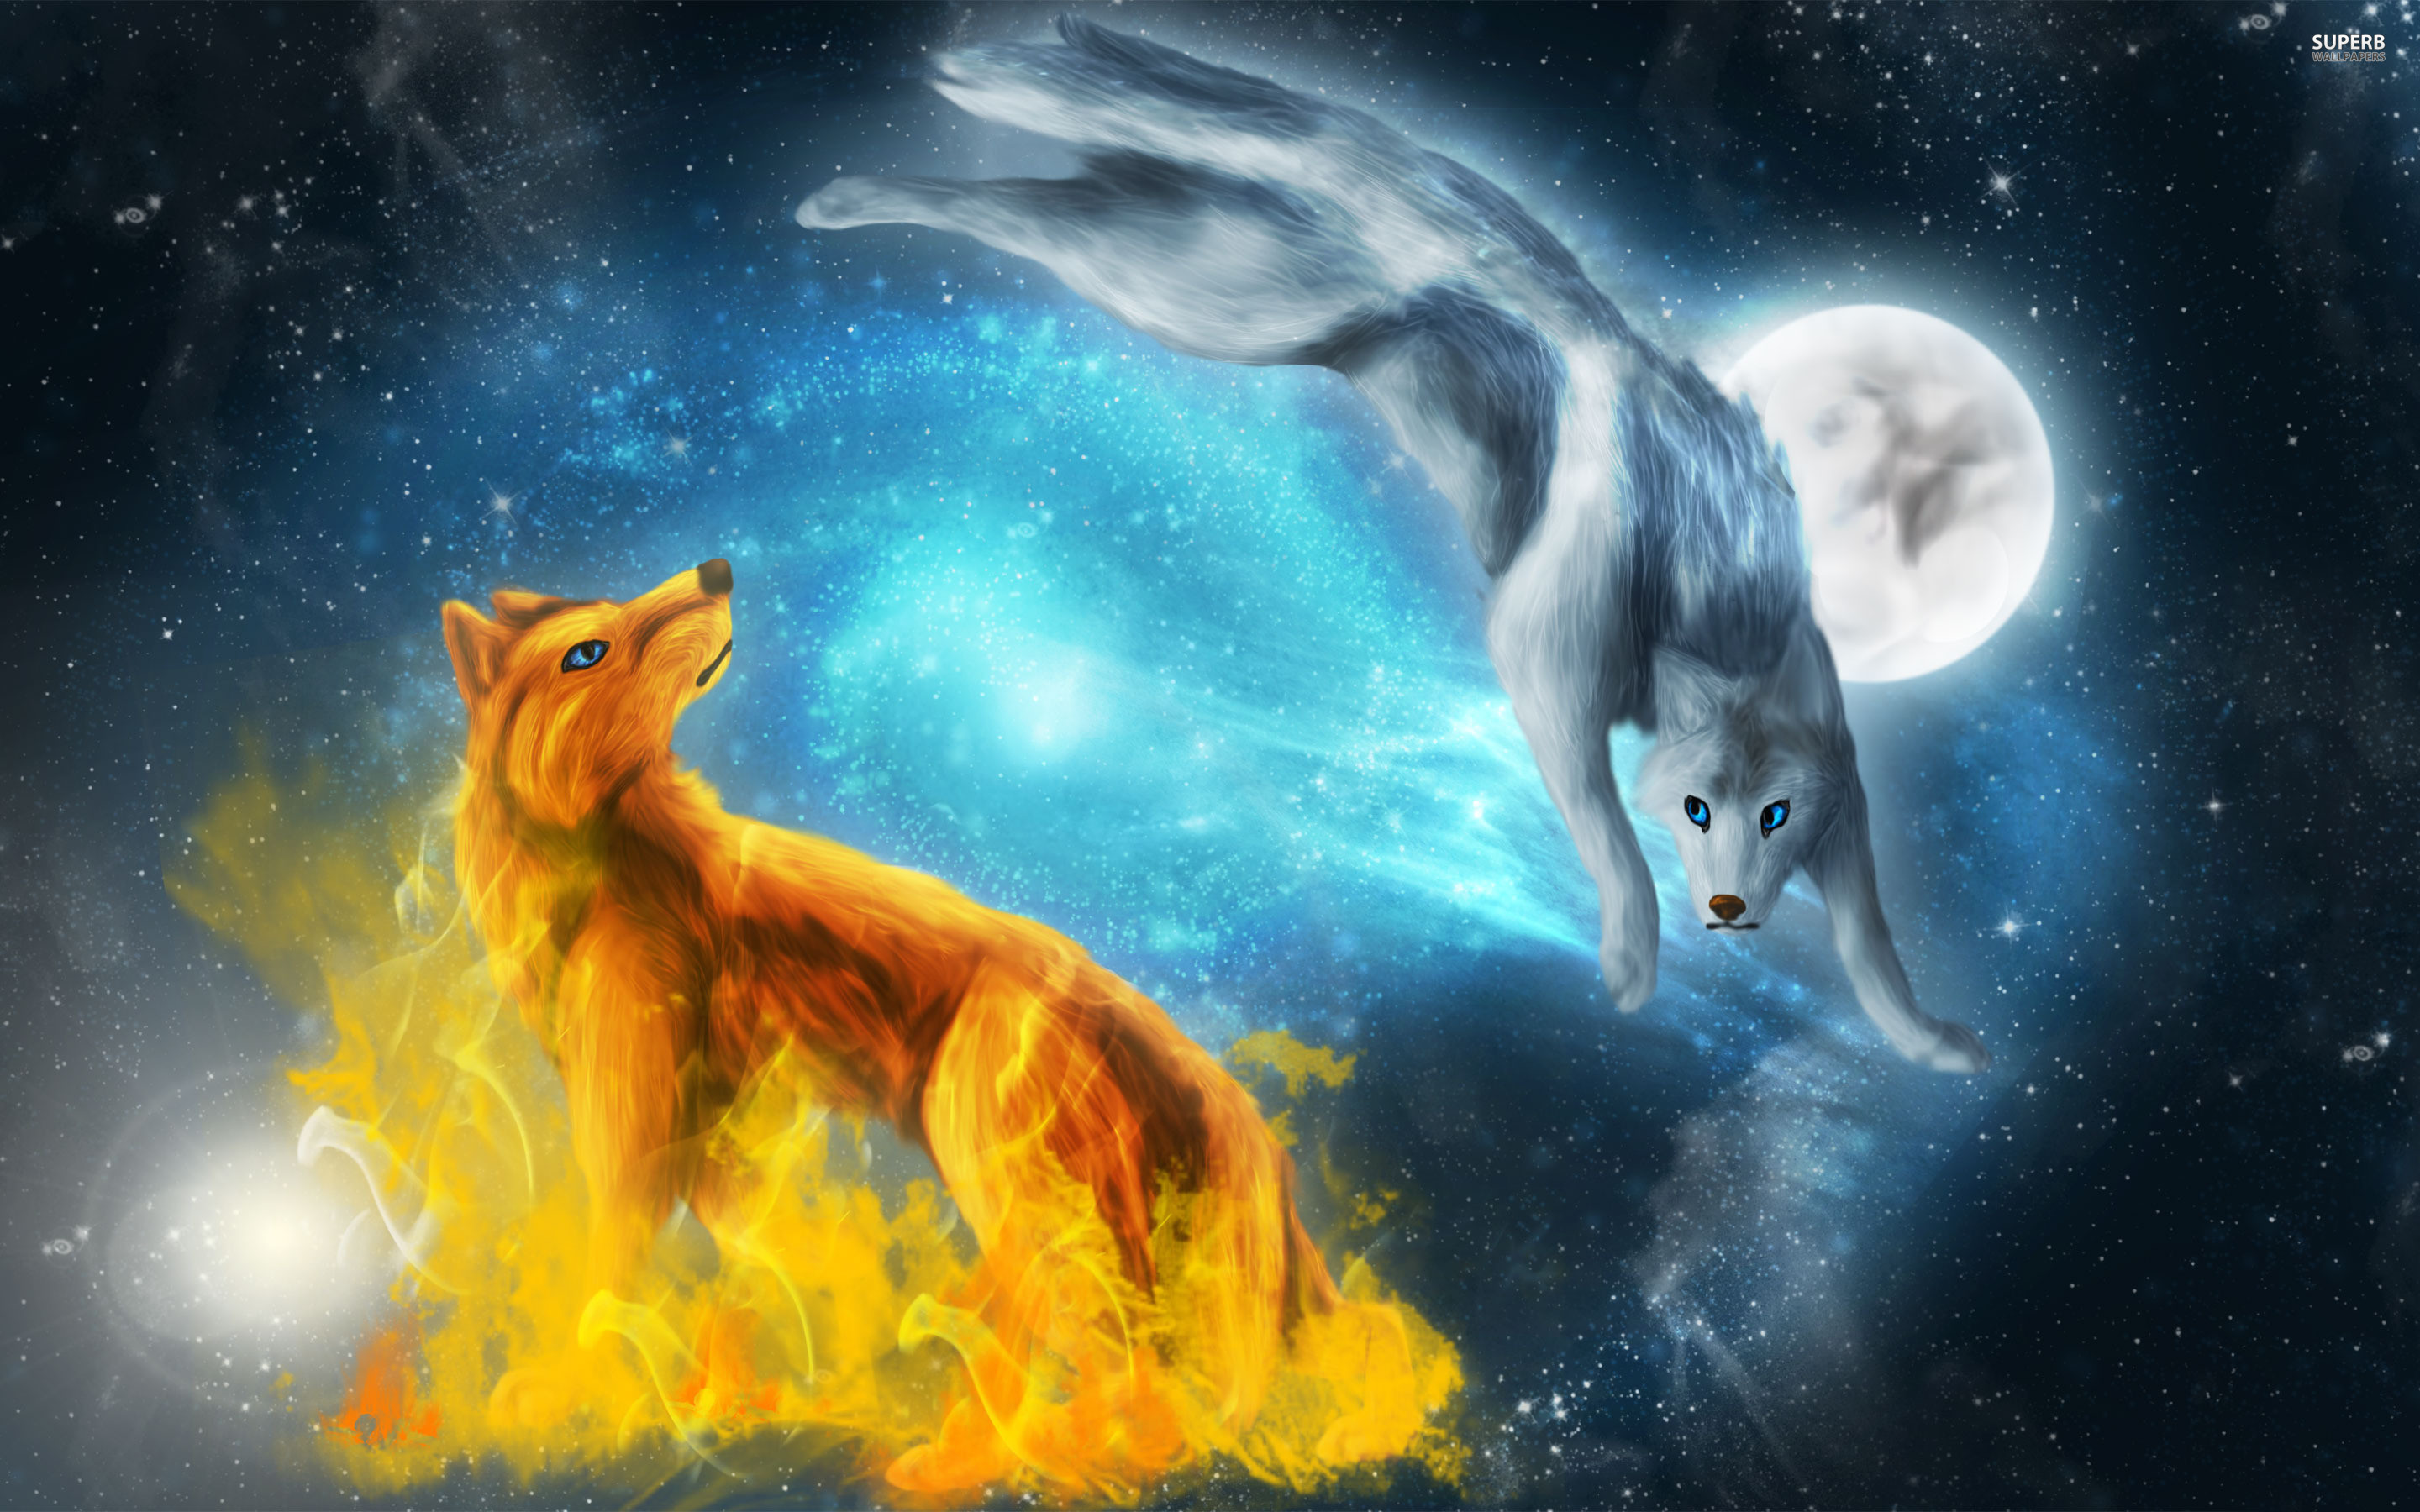 Wolves Wallpapers in High Definition   2880×1800, by Mohammed Ober